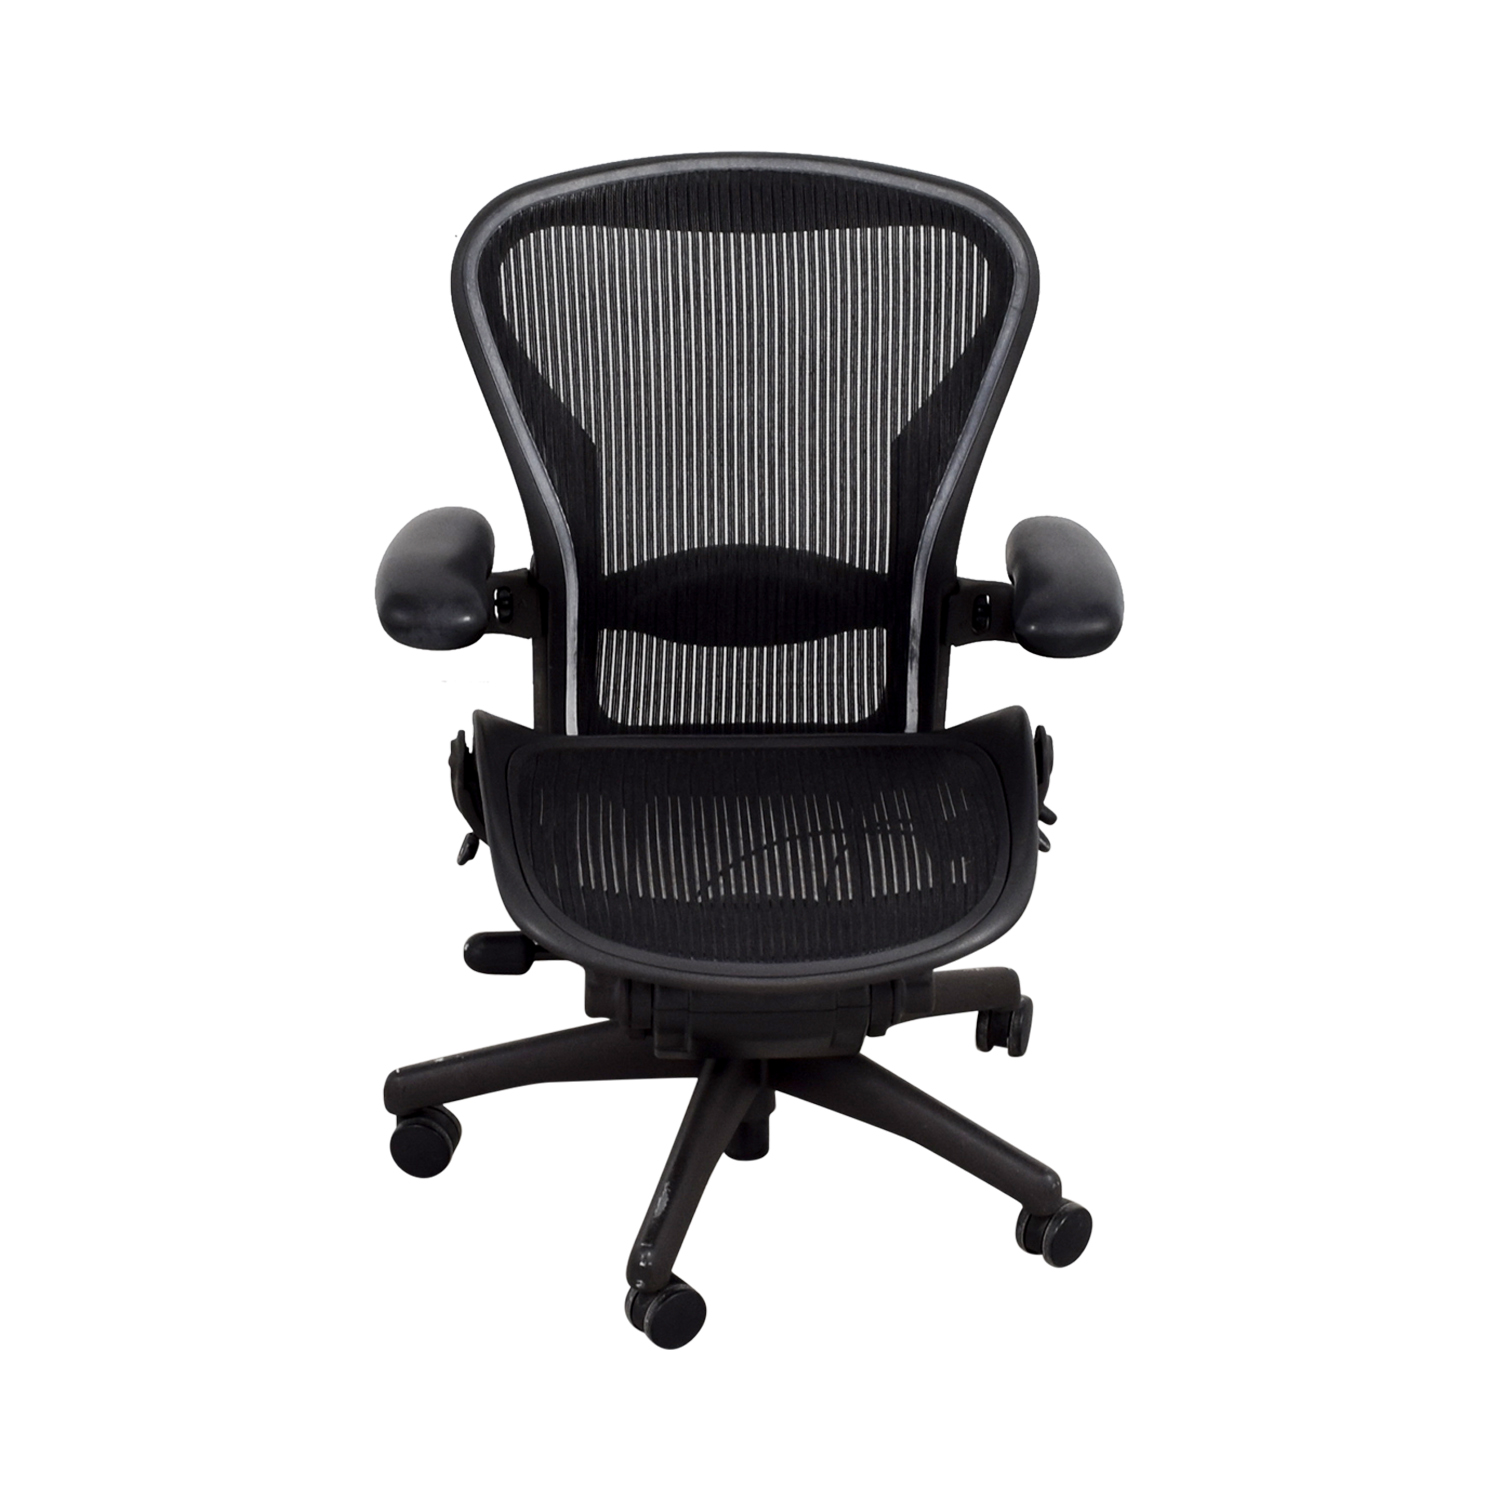 Herman Miller Herman Miller Aeron Miller Black Desk Chair Black